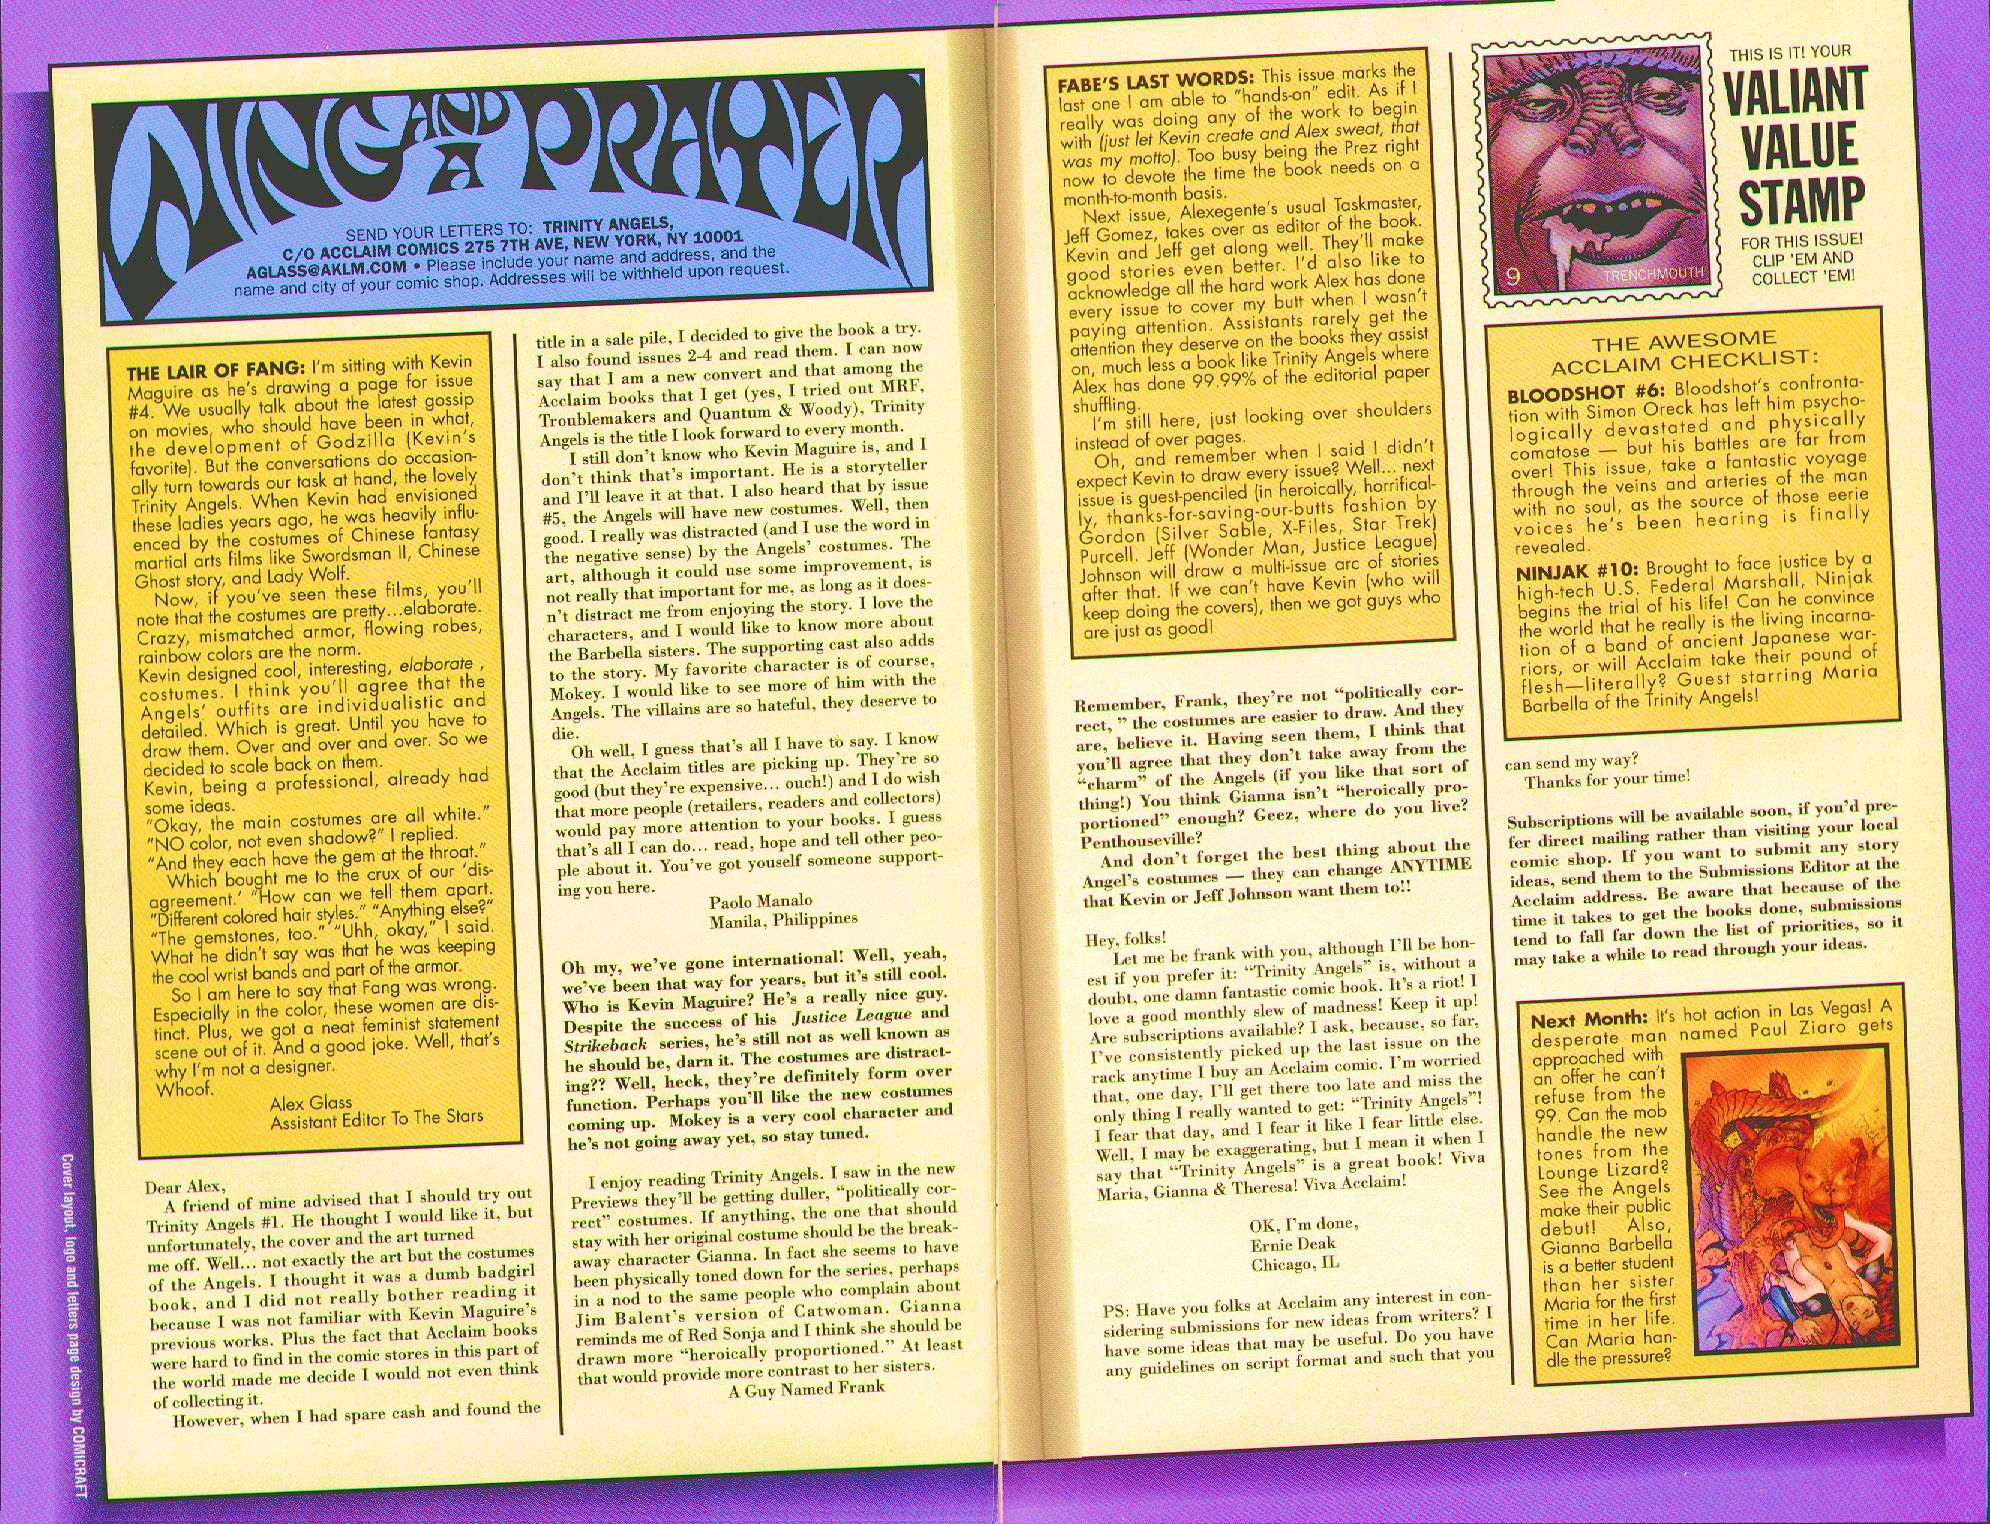 Read online Trinity Angels comic -  Issue #5 - 21